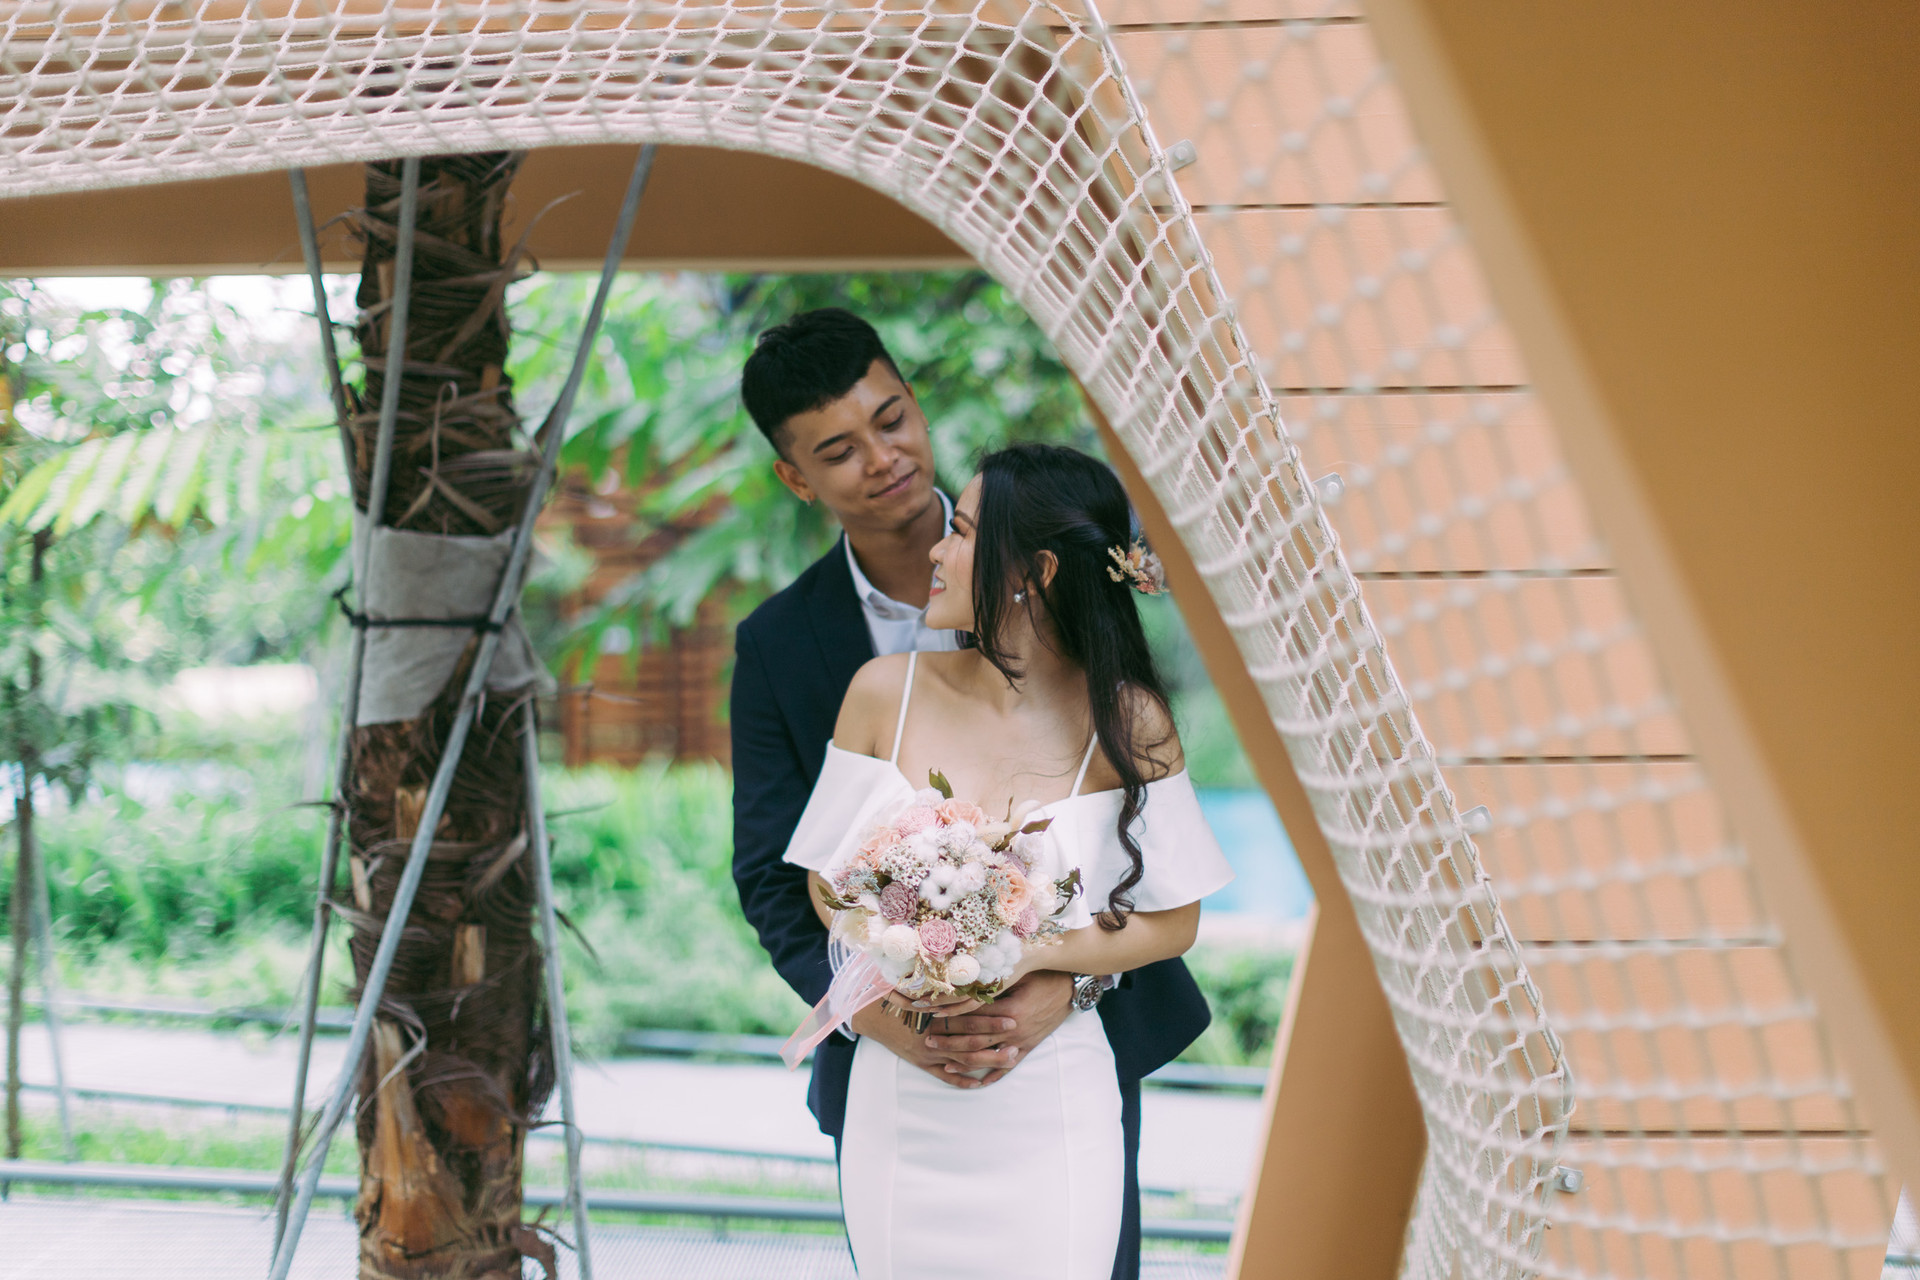 boonheng and jessica-74.jpg